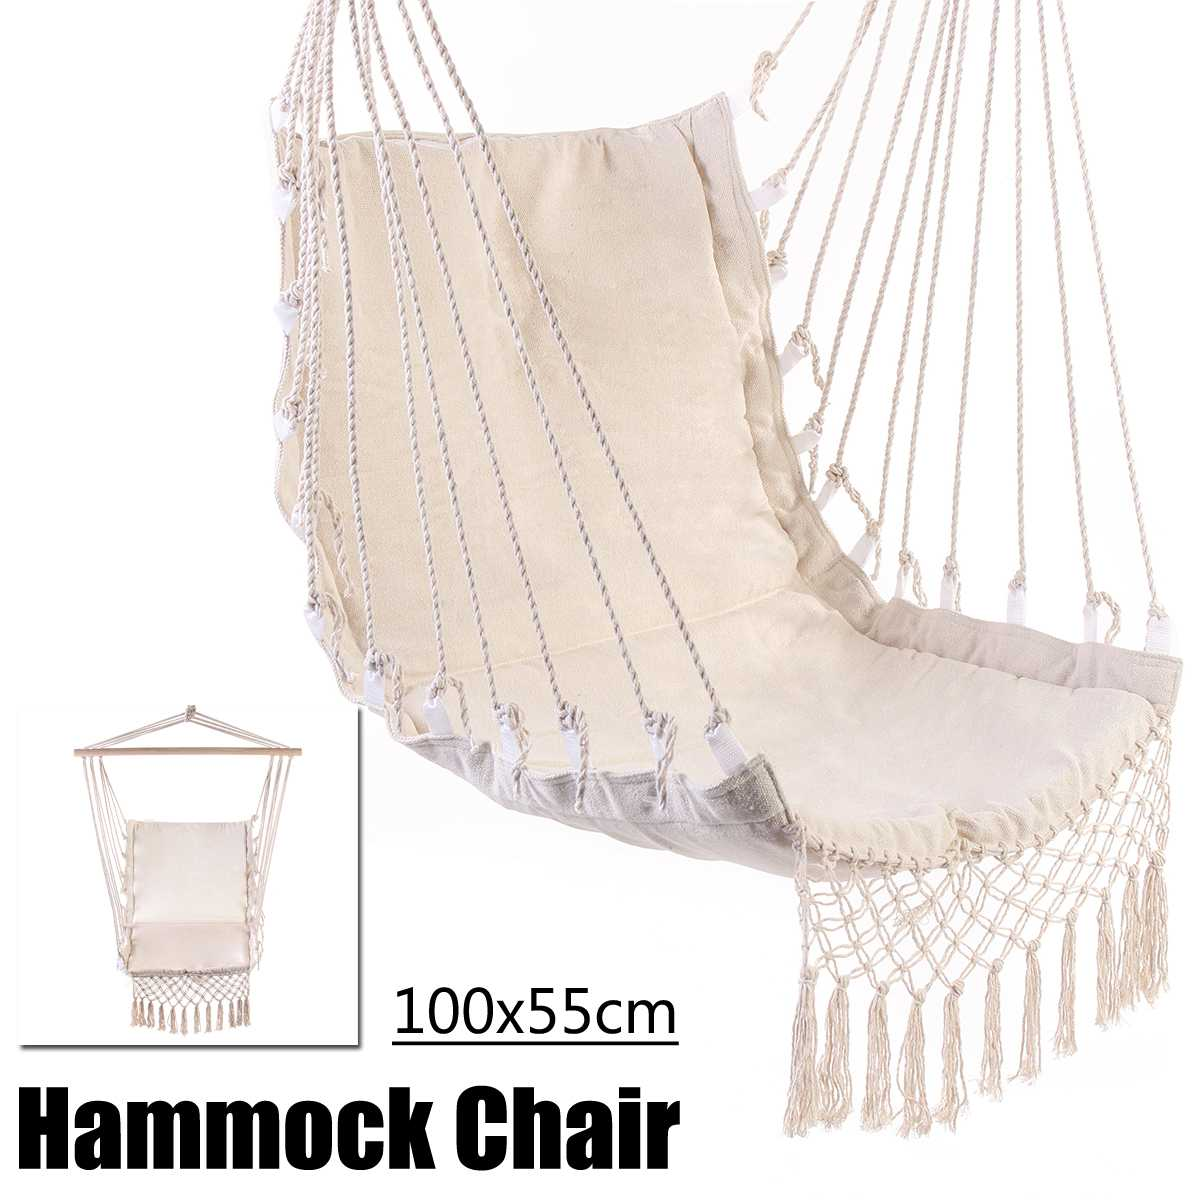 Nordic Style Hammock Outdoor Indoor Furniture Garden Bedroom Swing Hanging Chair for Children Adult